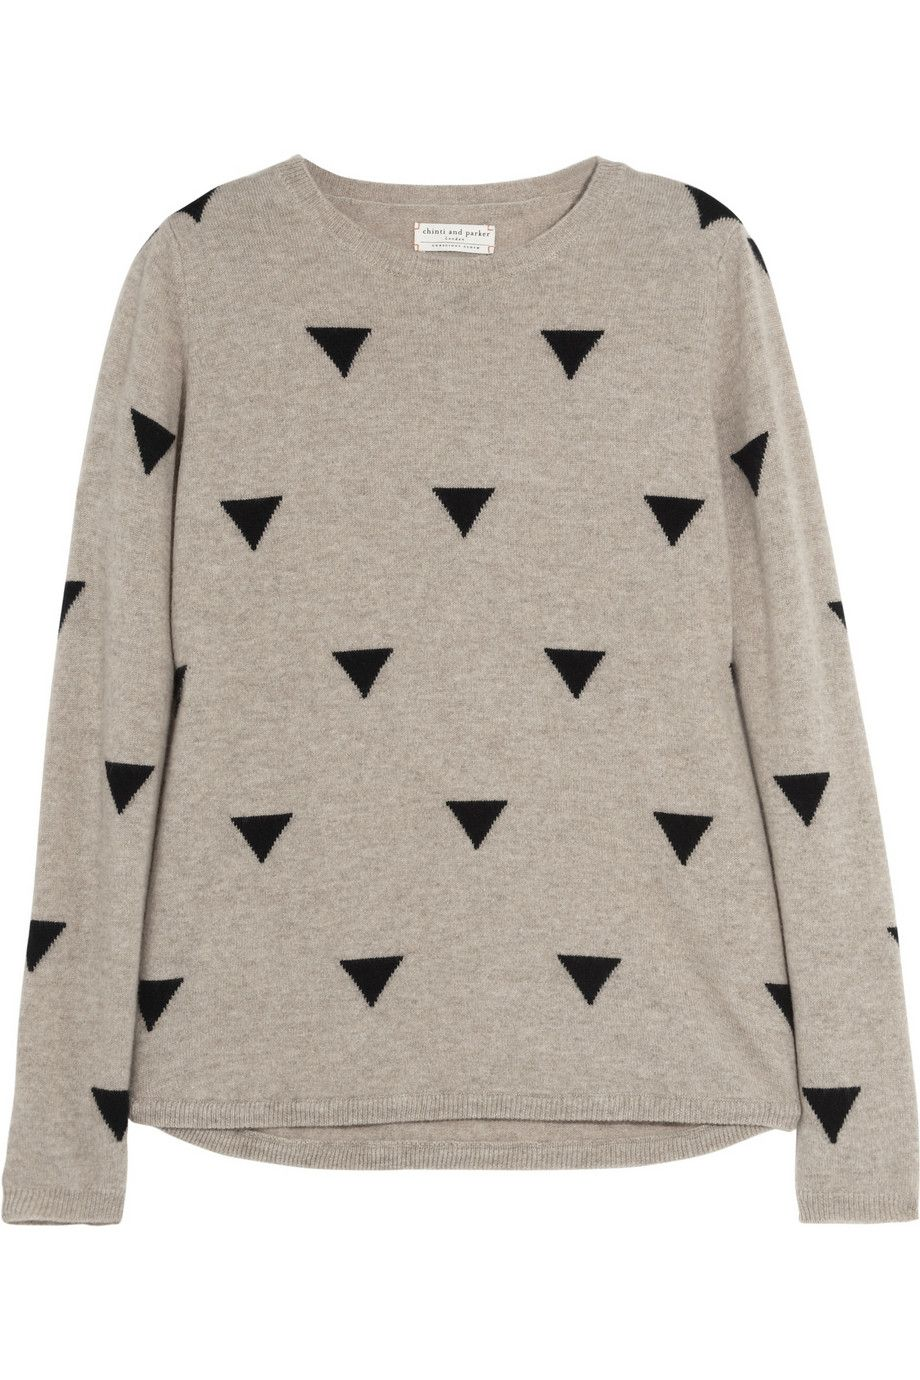 patterned cashmere sweater. chinti and parker. | Fall/Winter 2014 ...